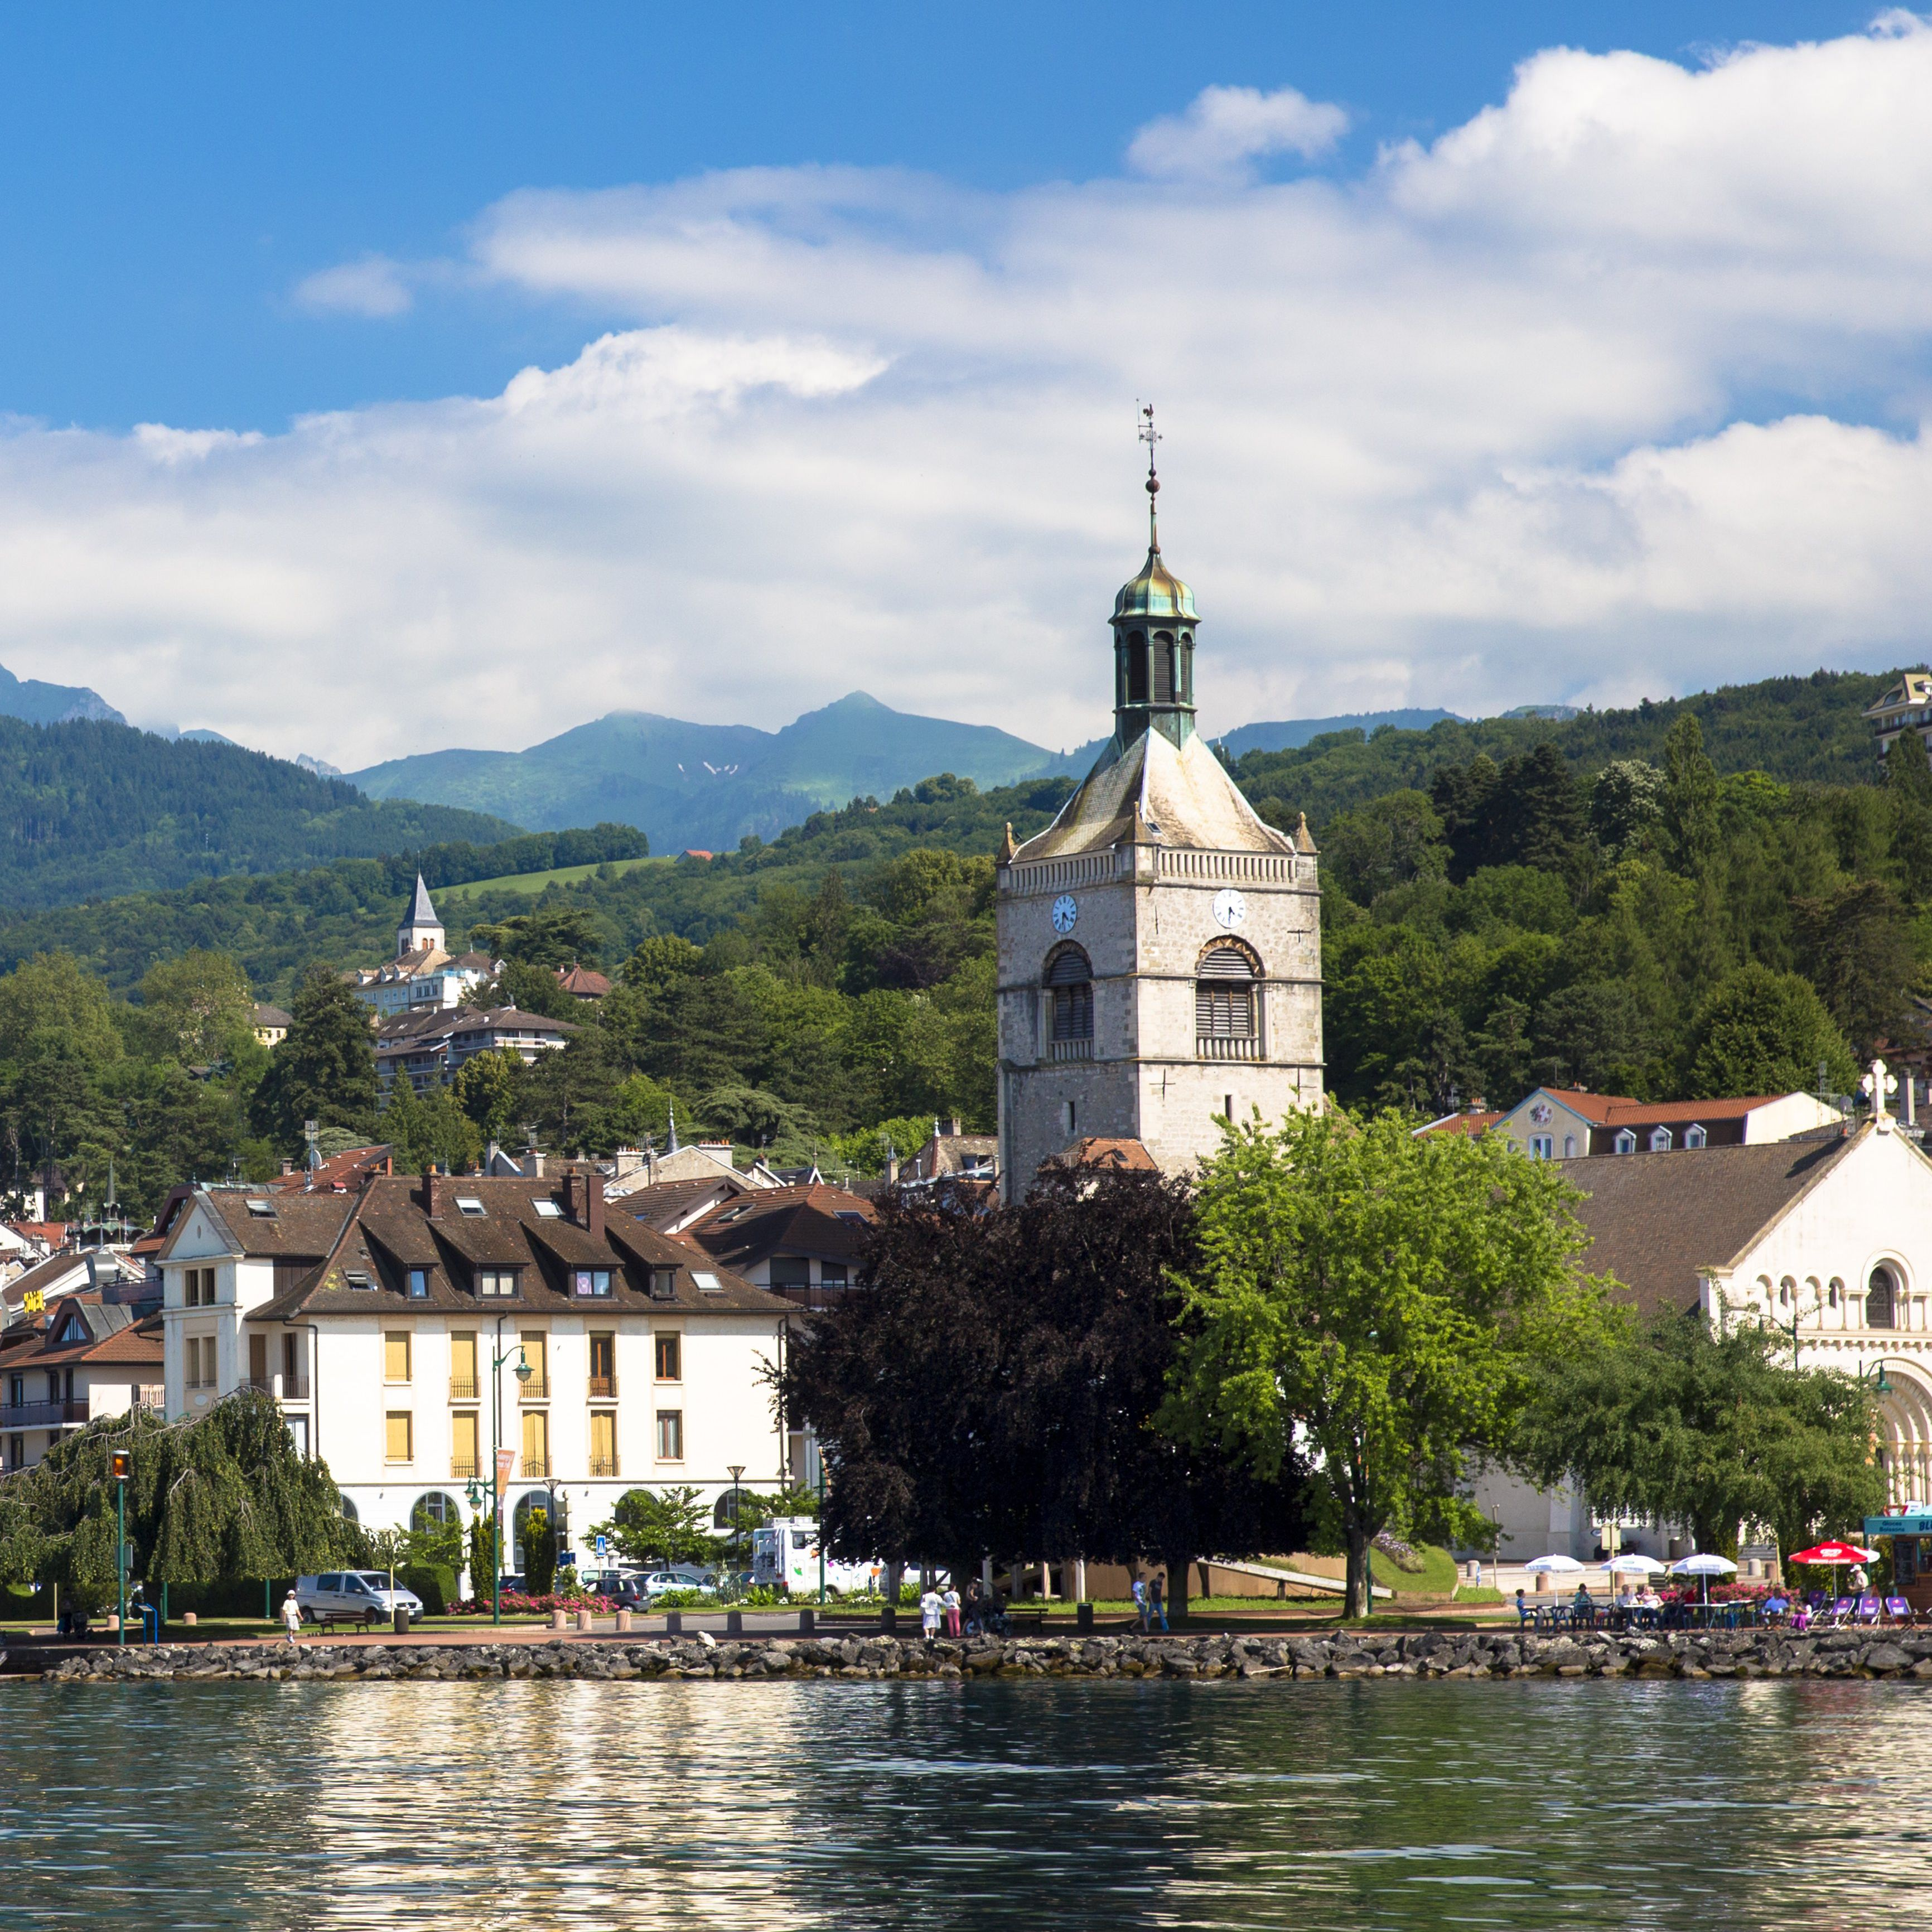 Lake Geneva is free, but the city is eye-wateringly expensive